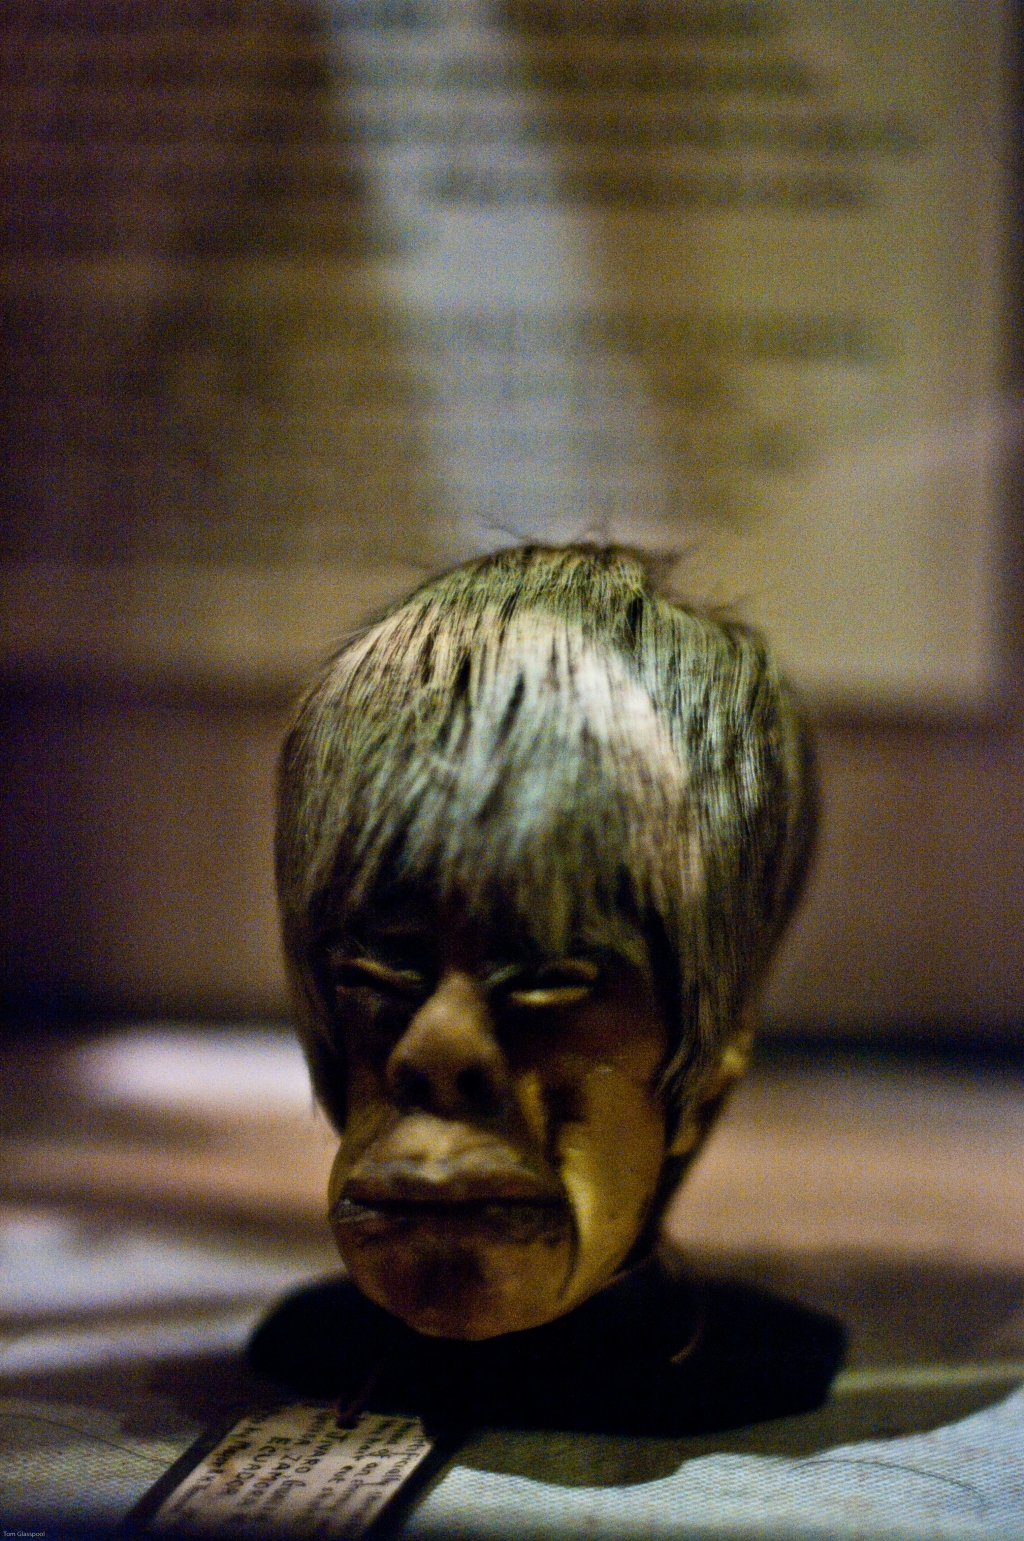 shrunken head, boris johnson, Pitt Rivers, Museum, Oxford, photography